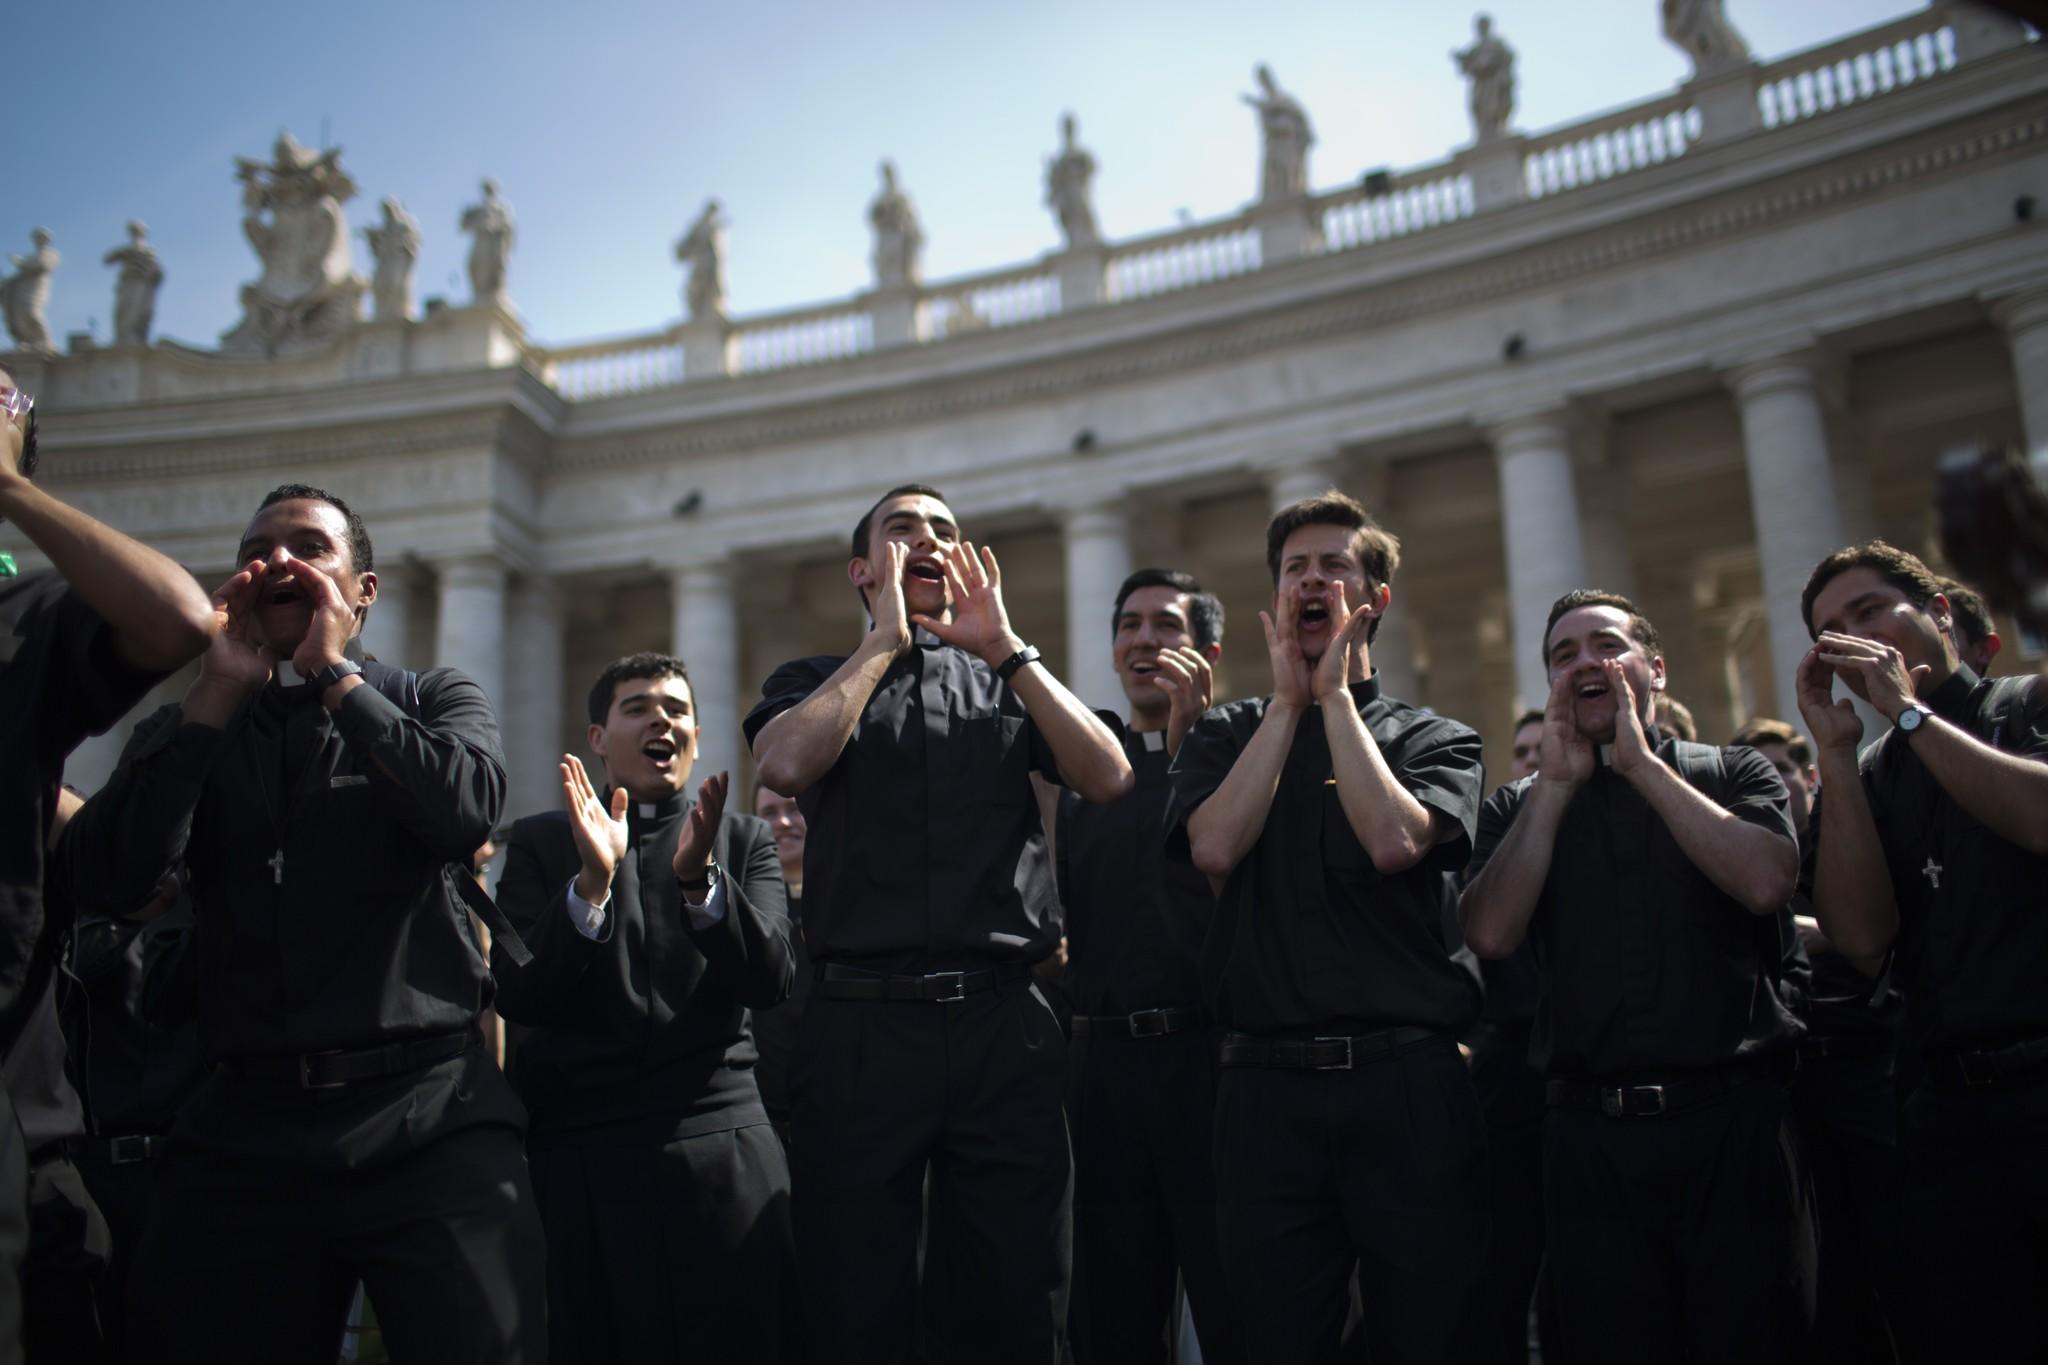 Priests sing and dance in St. Peter's Square at the Vatican on Saturday.